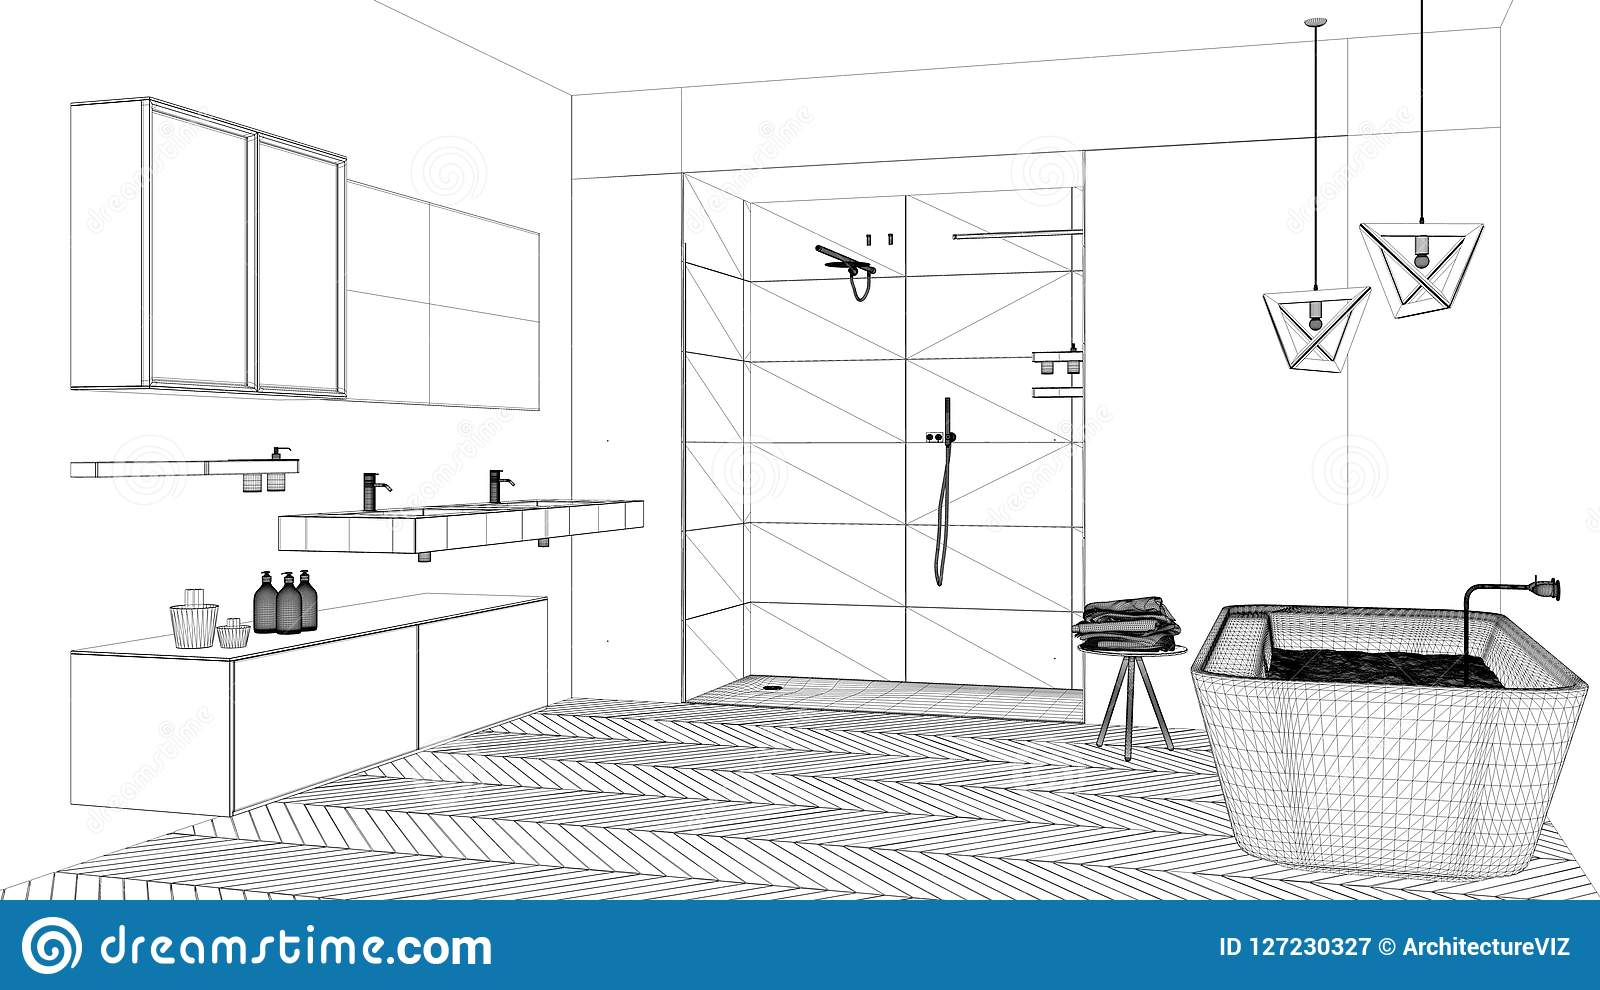 Interior design project black and white ink sketch architecture blueprint showing modern bathroom with bathtub  sc 1 st  Dreamstime.com & Interior Design Project Black And White Ink Sketch Architecture ...